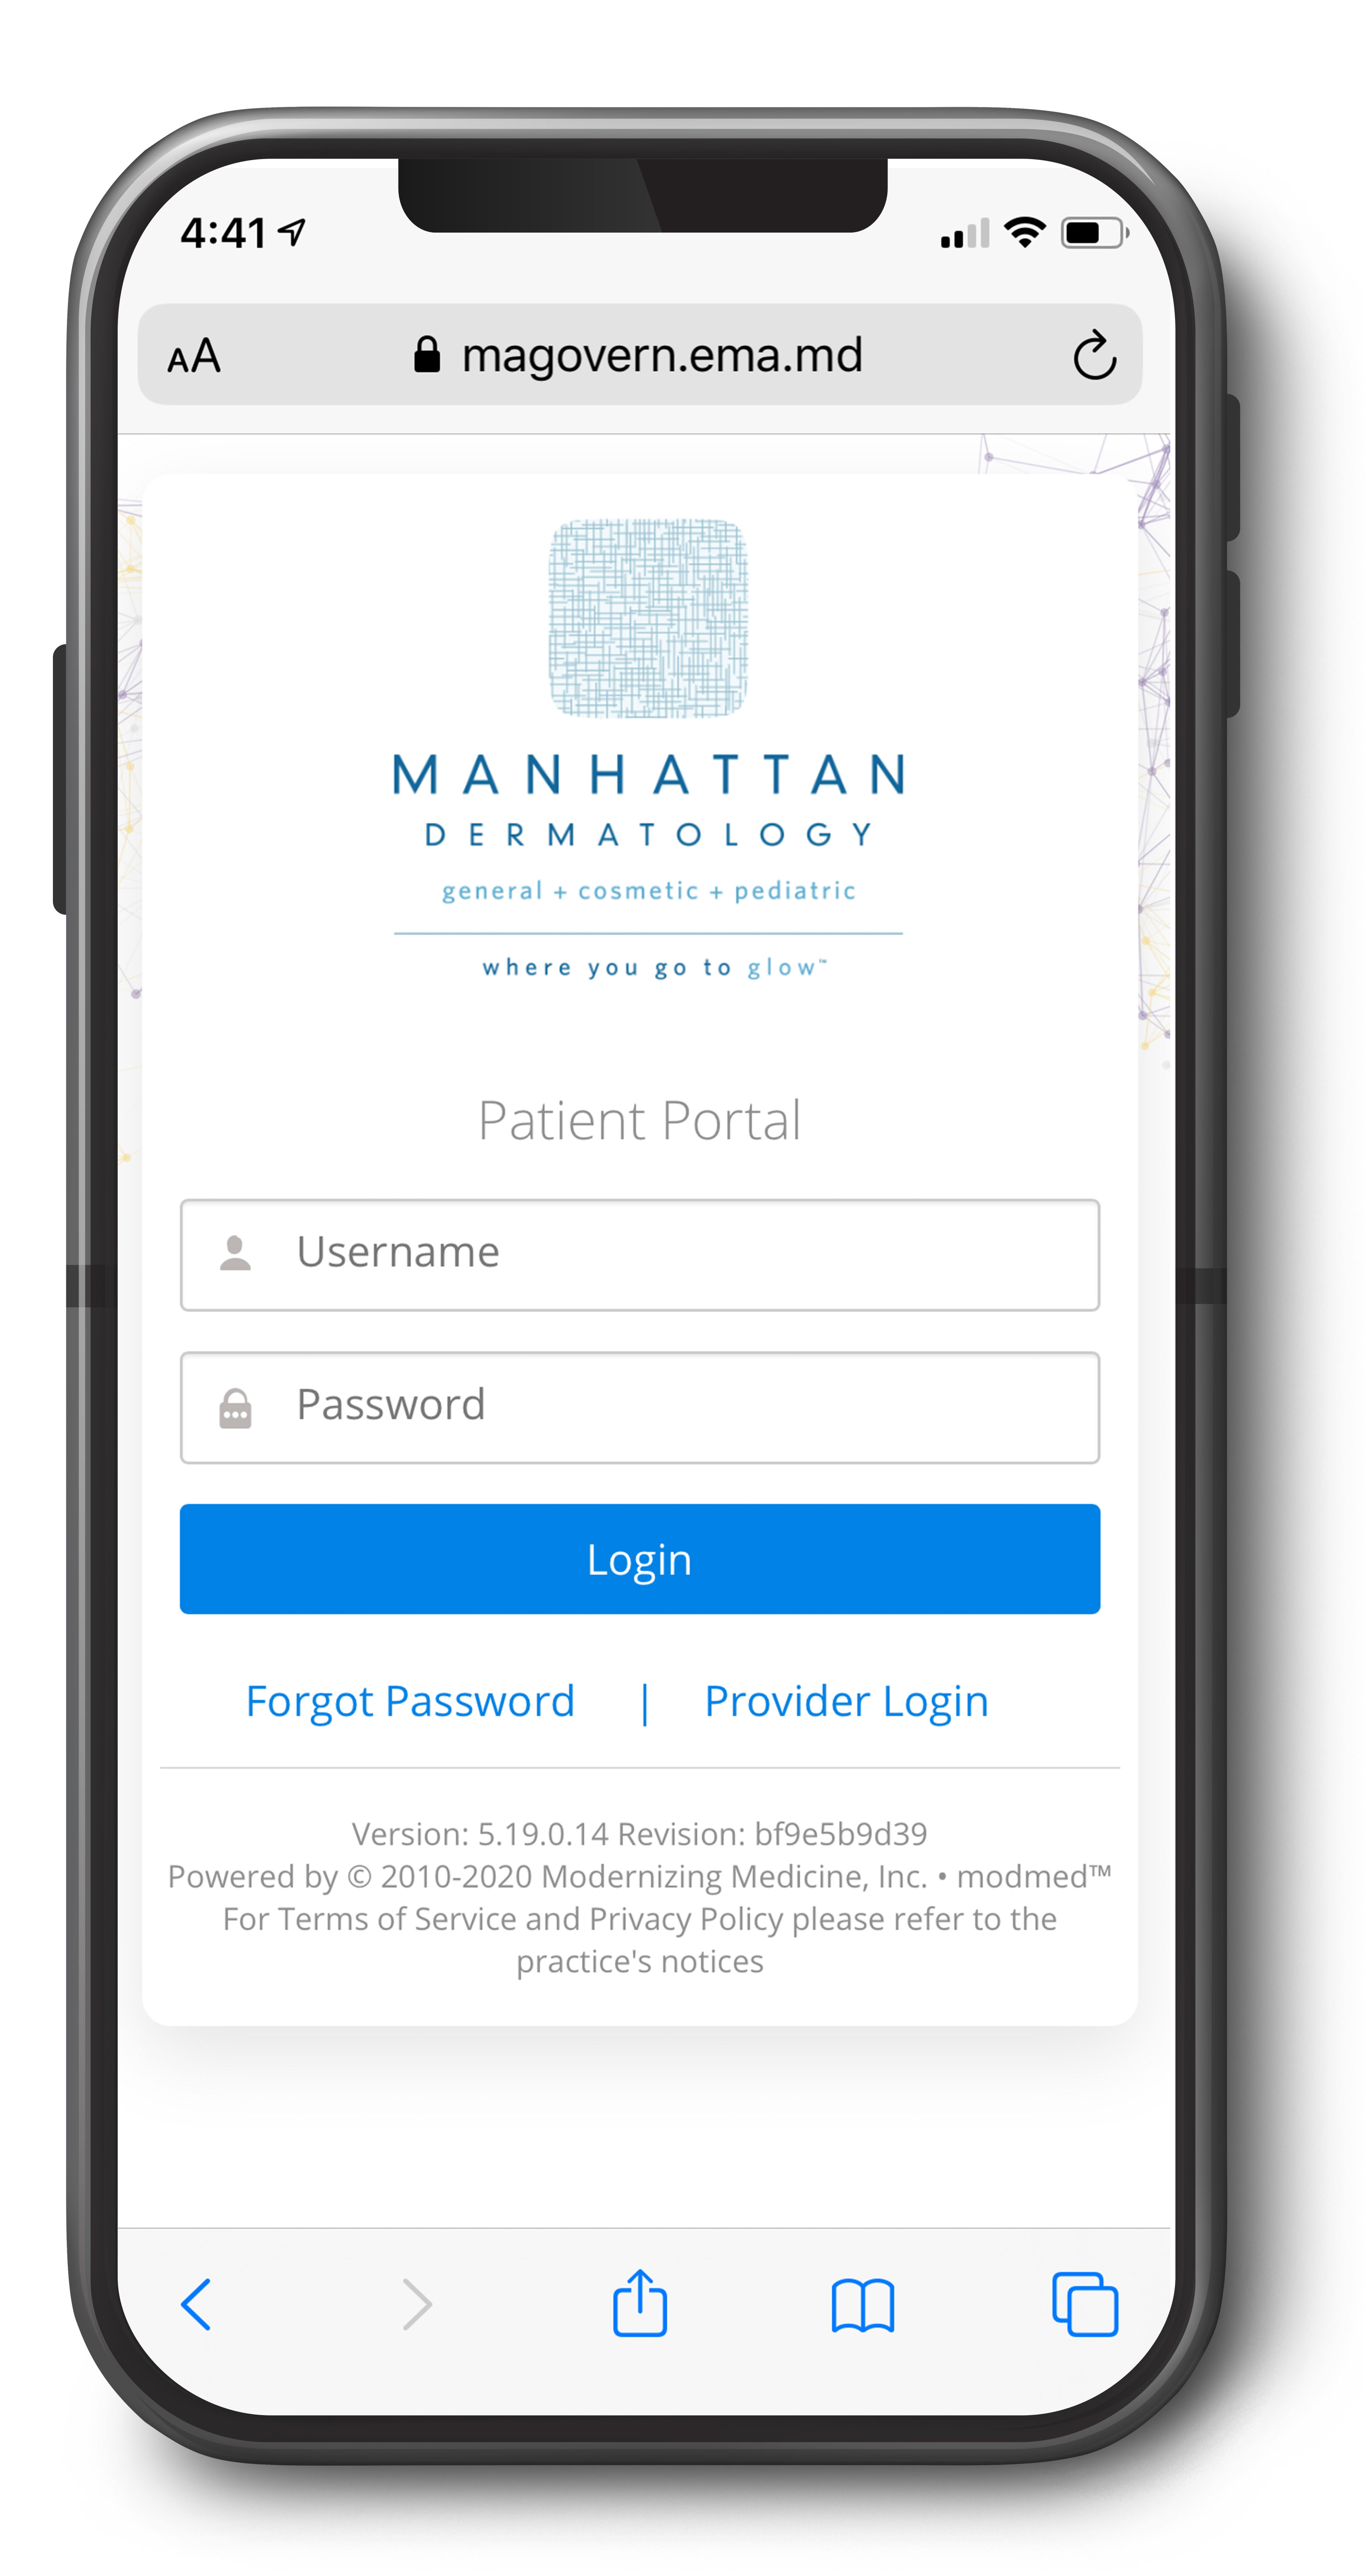 access our patient portal here